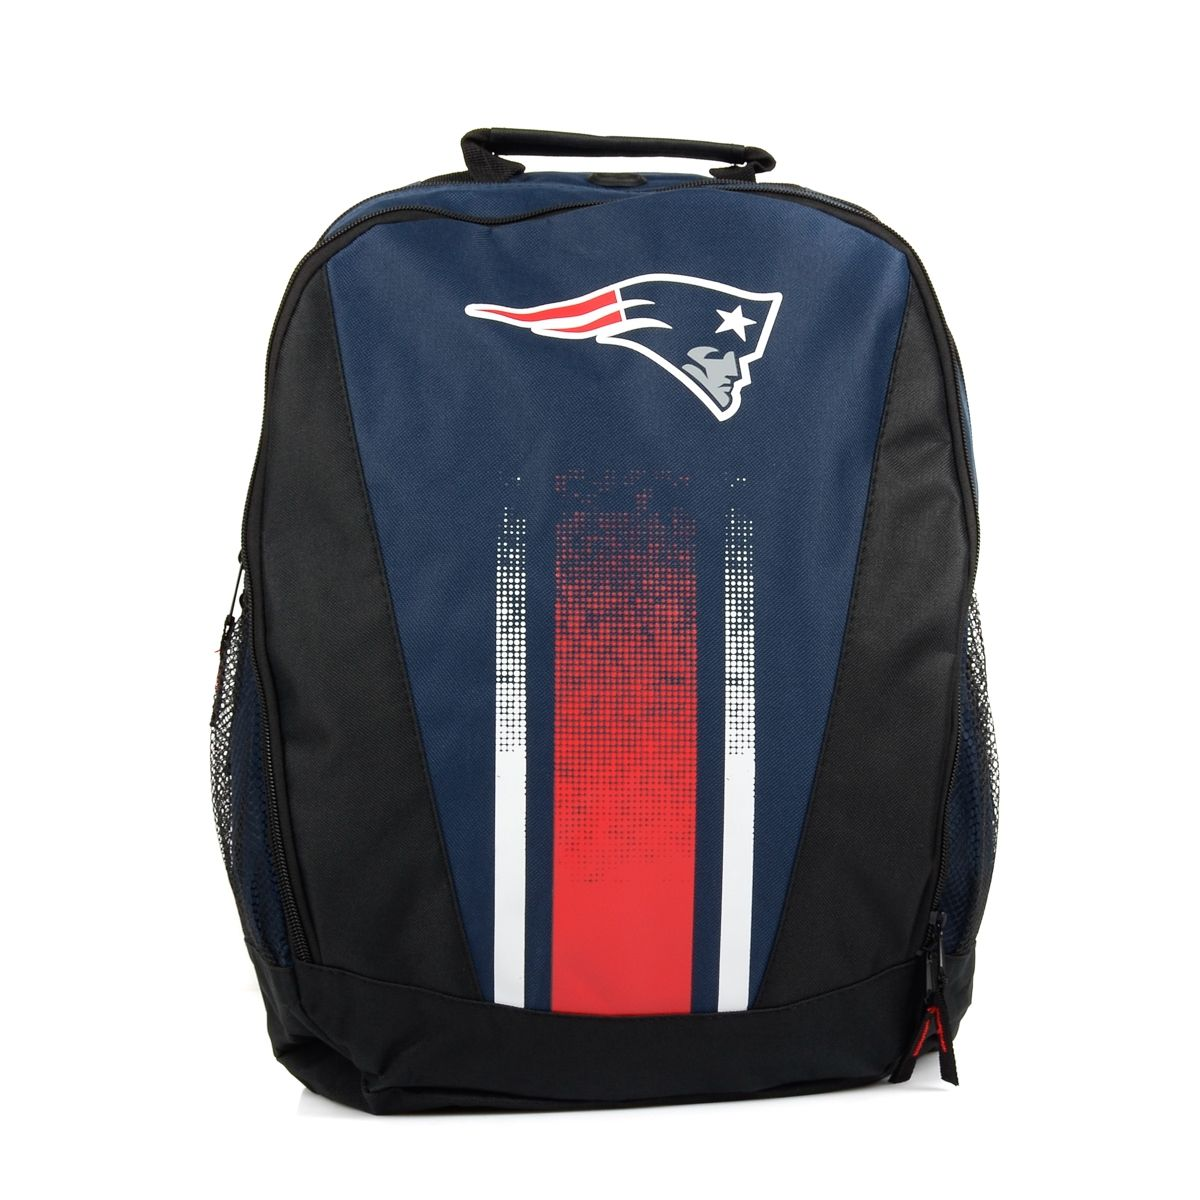 2ab36a1fddc Type Backpacks Forever Collectibles NFL New England Patriots ...